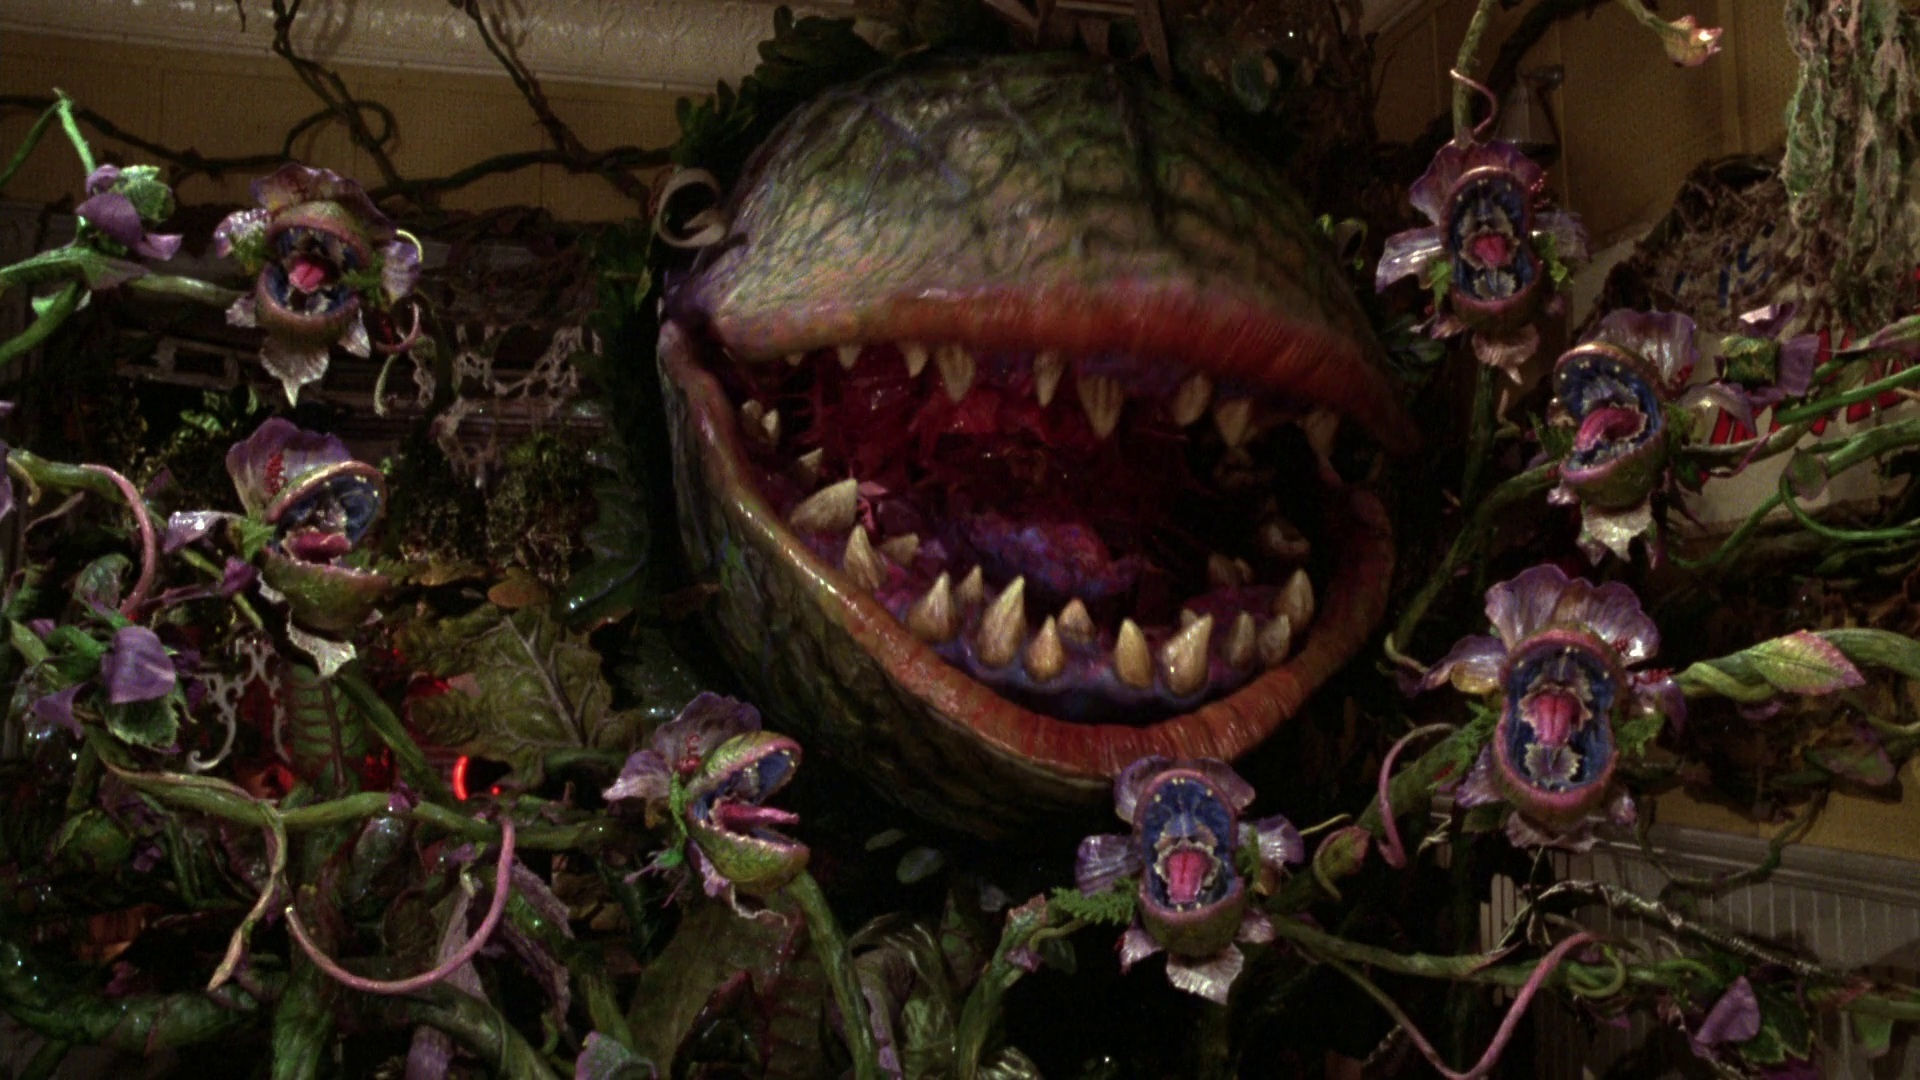 The World's Scariest Flowers... or what nightmares are made of.